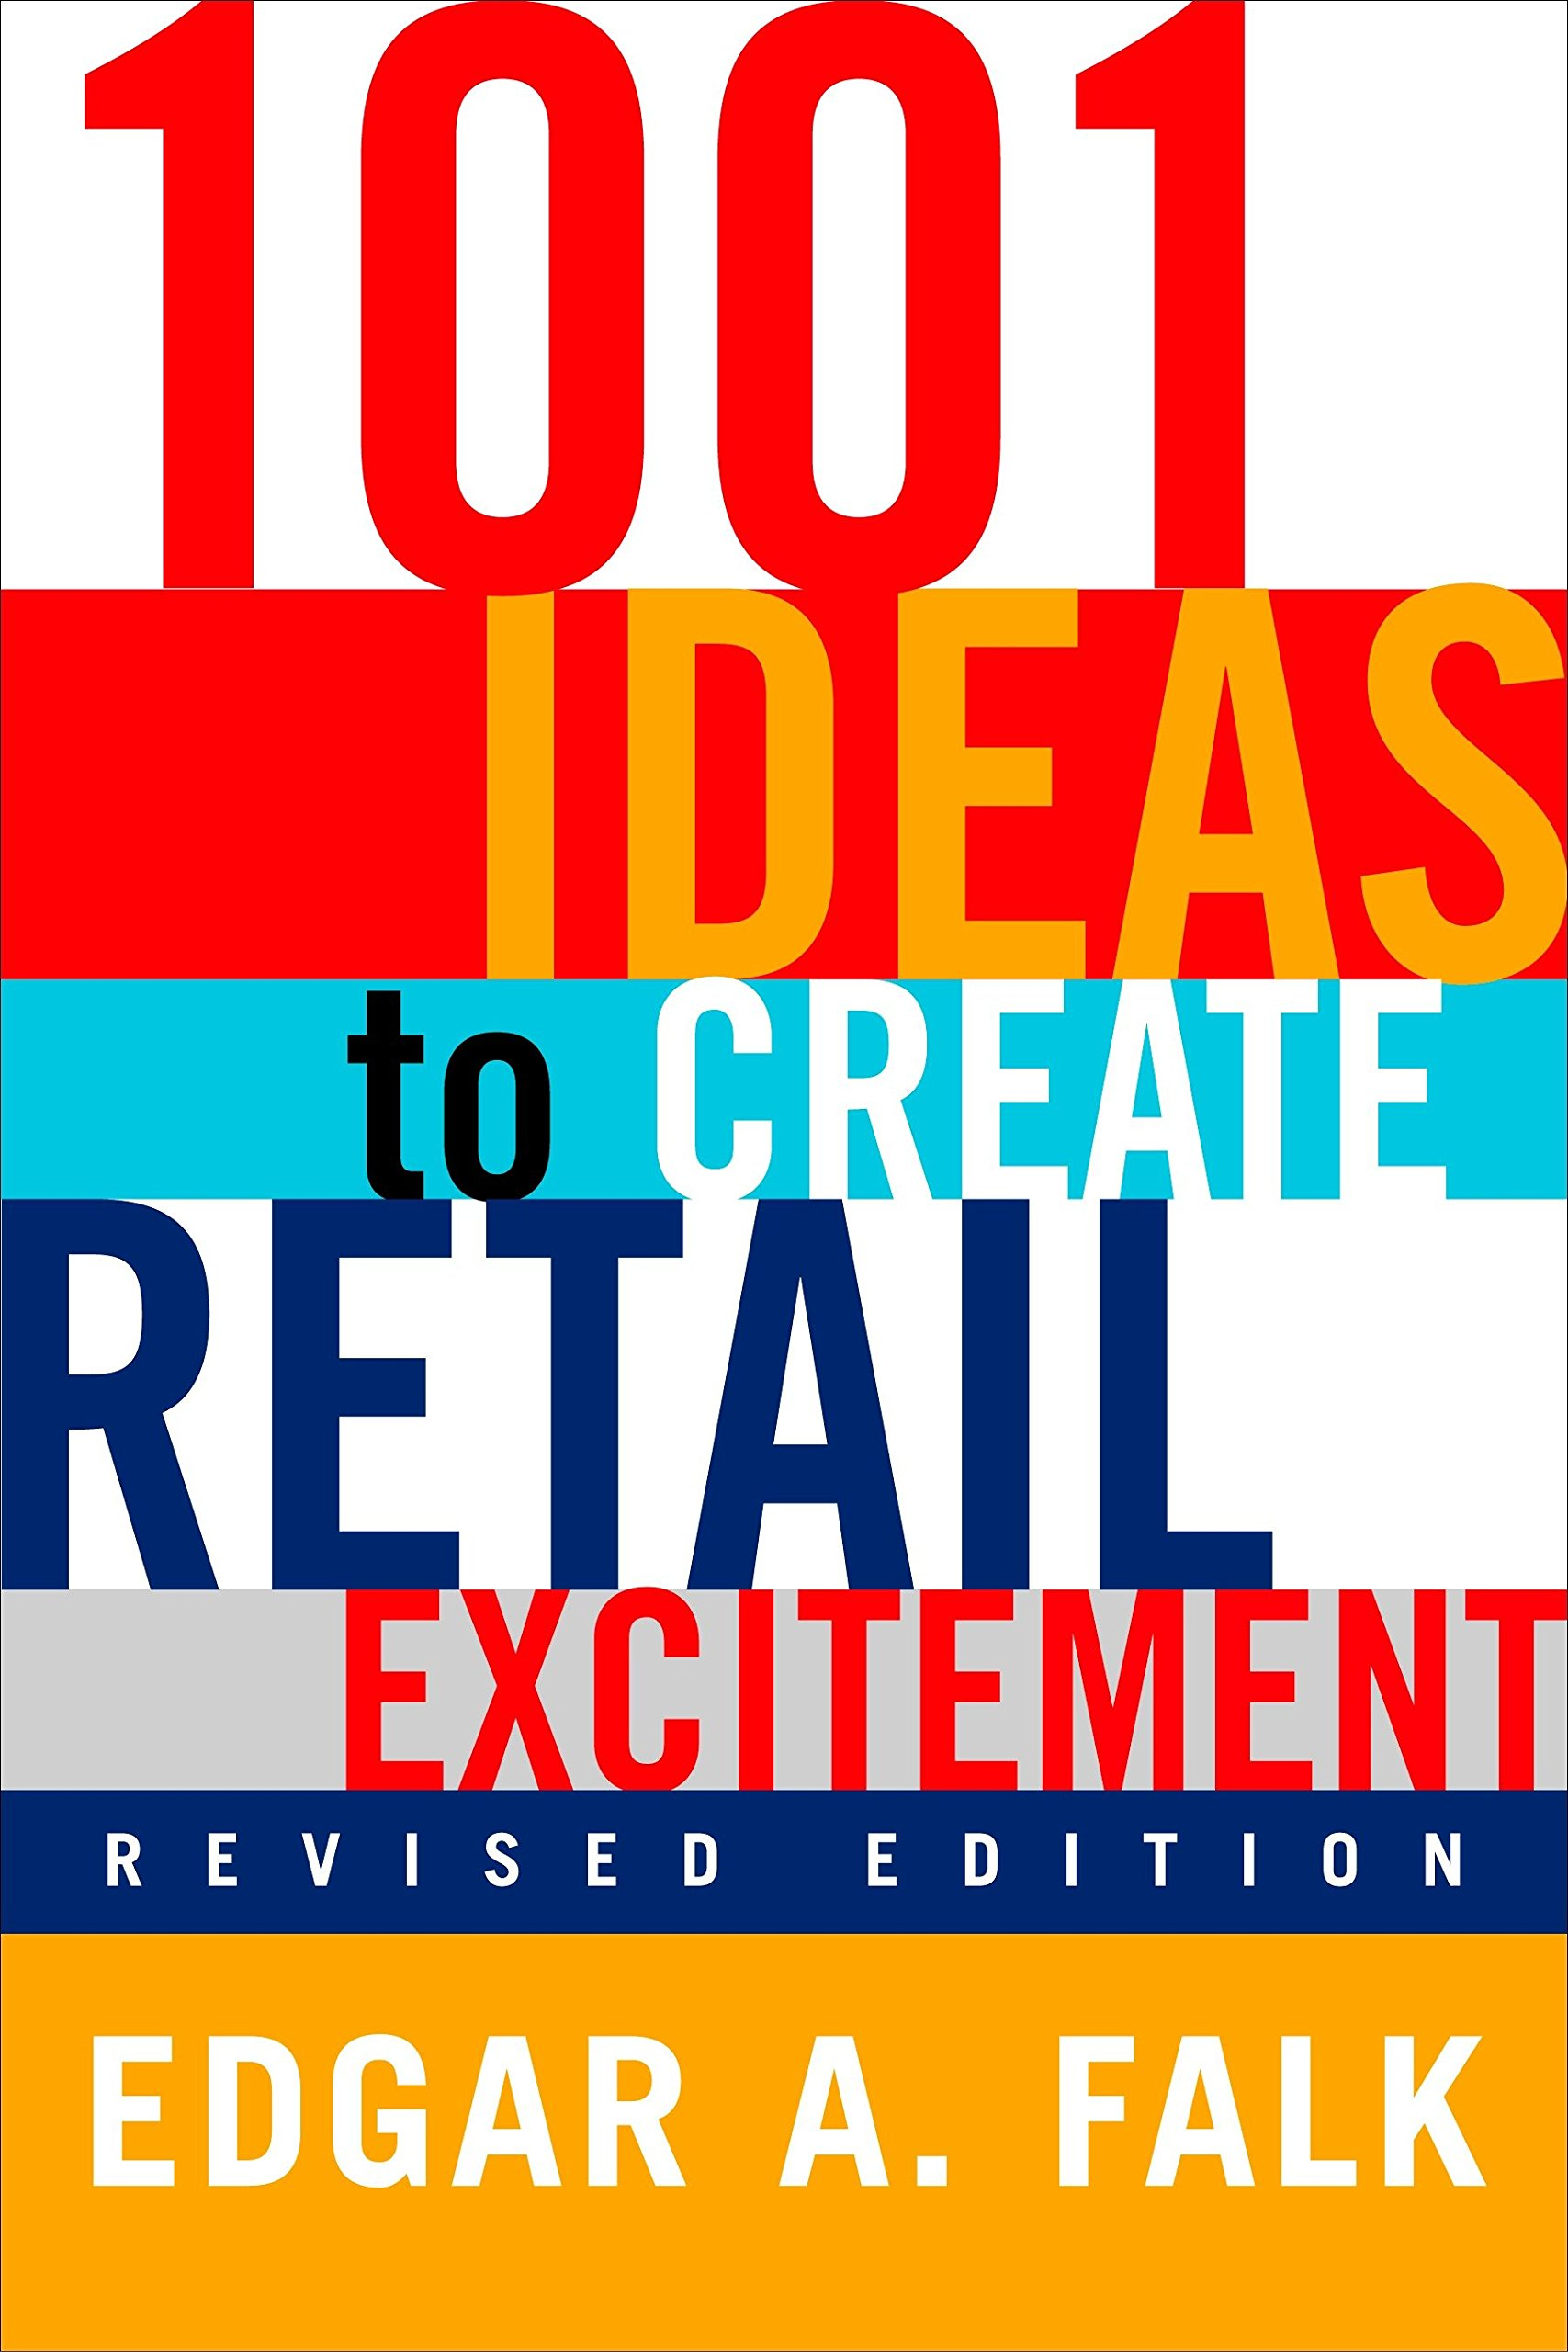 1001 Ideas to Create Retail Excitement, Revised Edition (2003): Edgar A.  Falk: 9780735203433: Amazon.com: Books